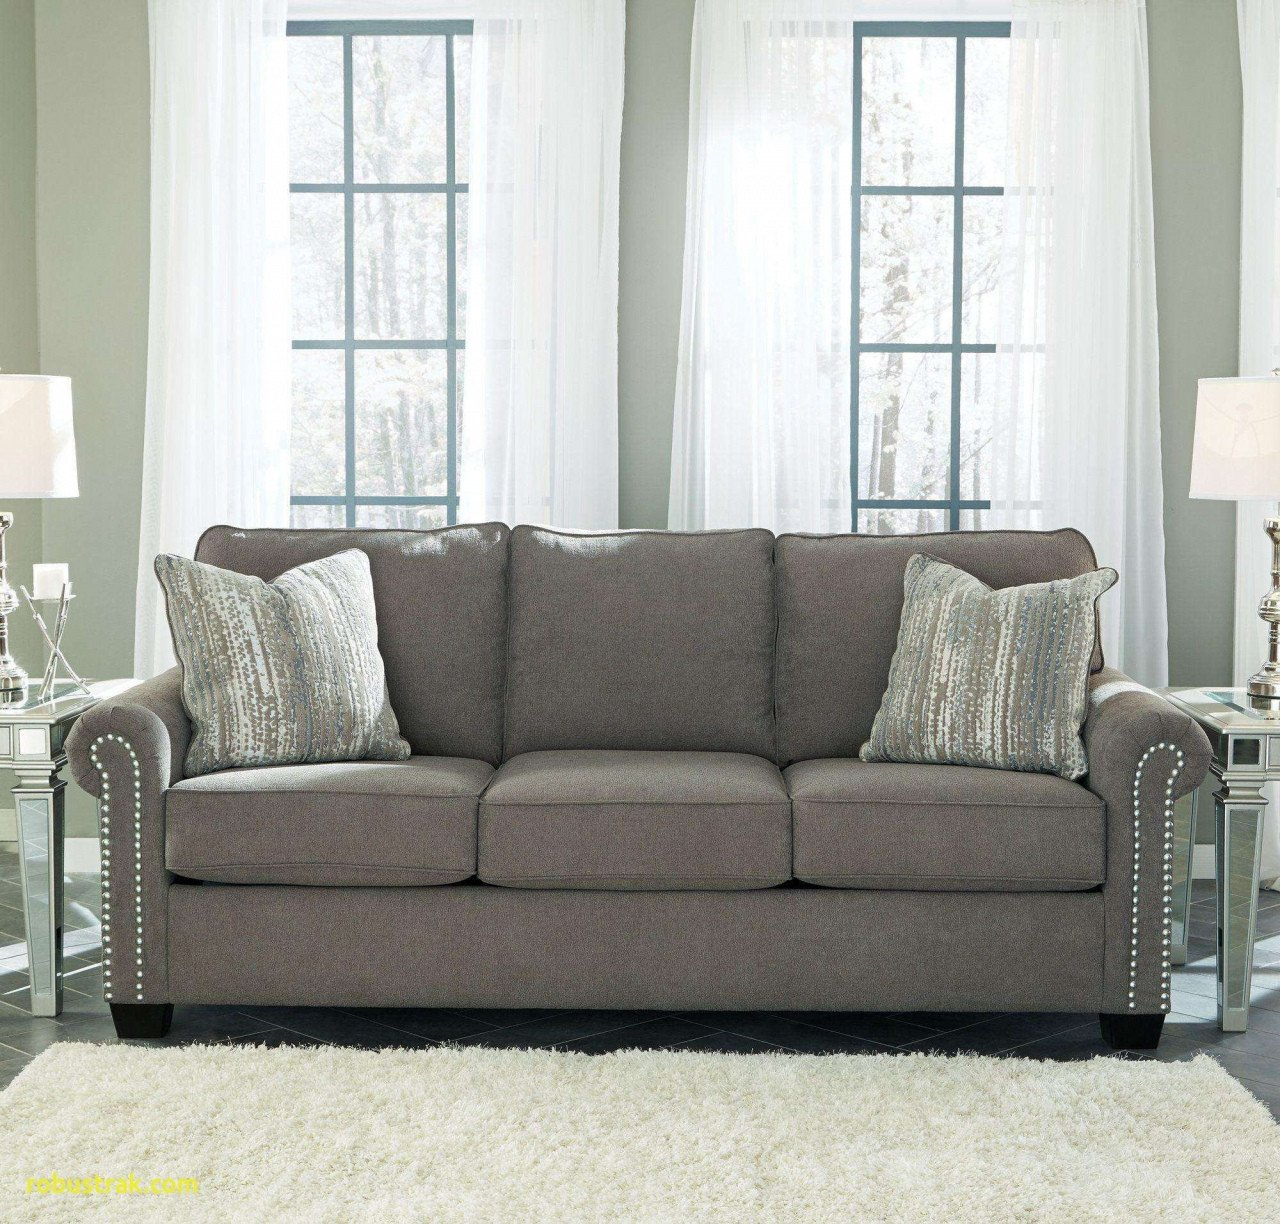 Red and Gray Bedroom Fresh Gray Couch Living Room — Procura Home Blog